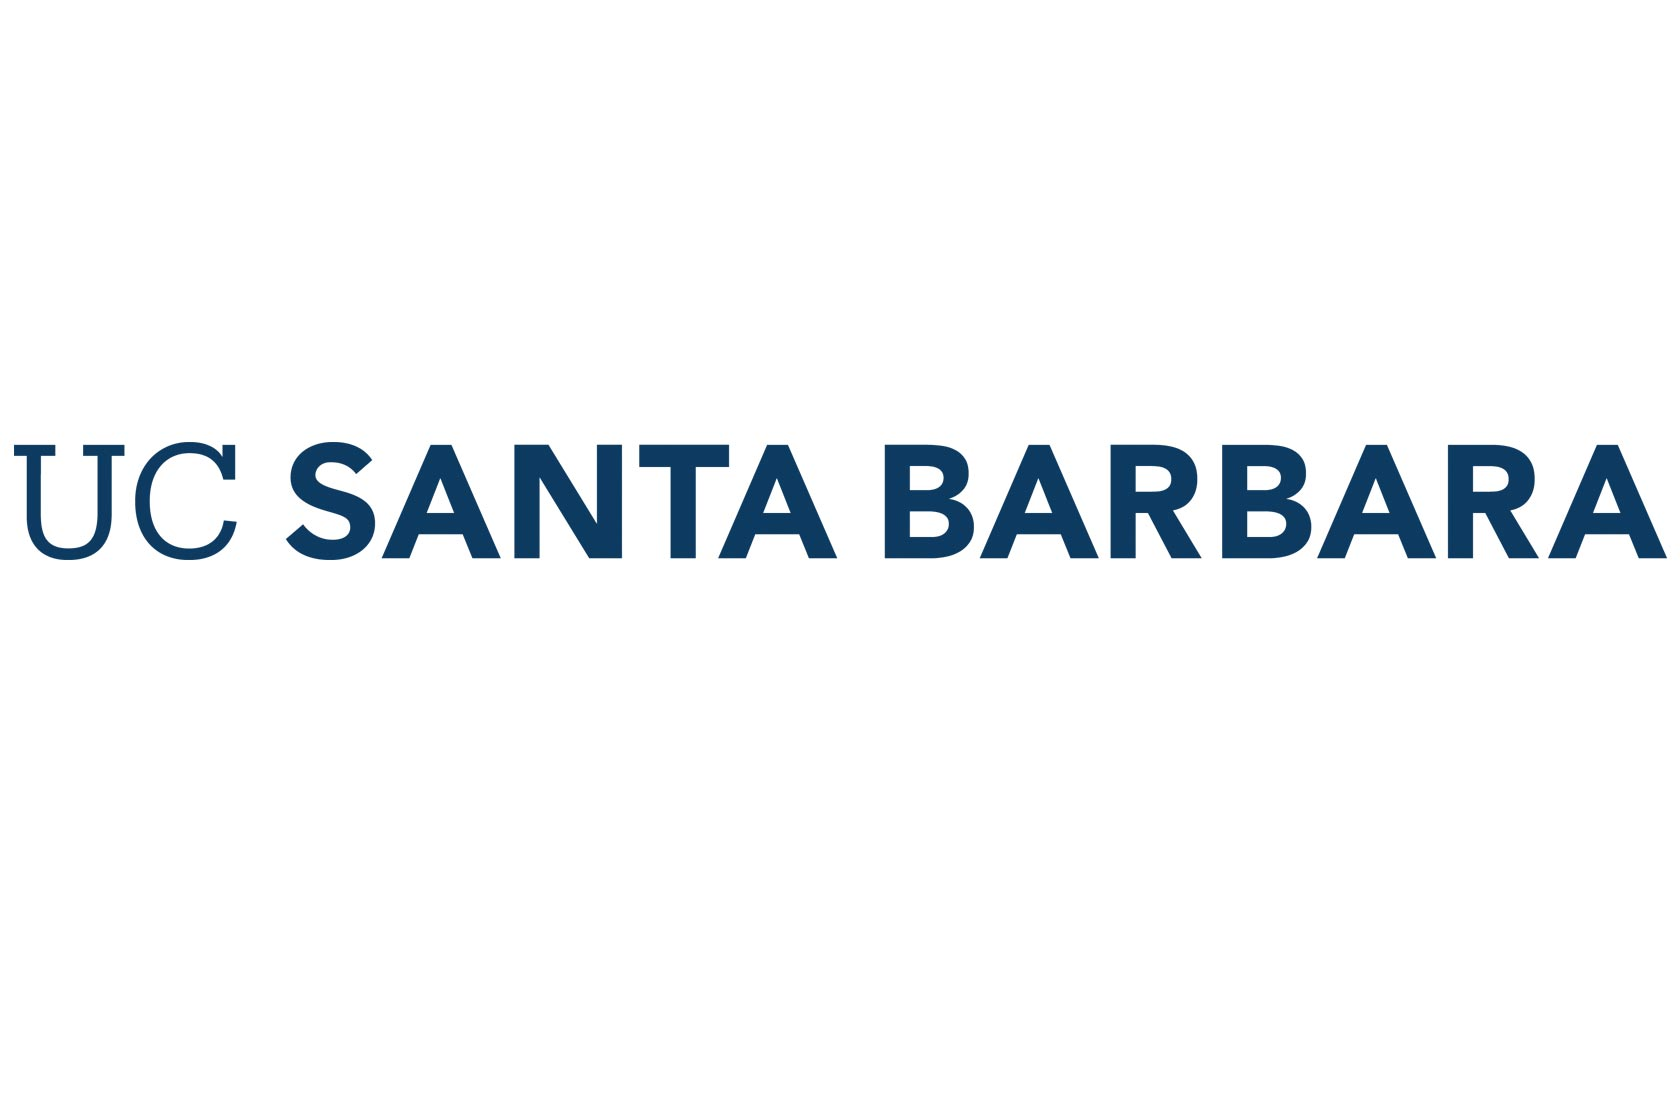 UC Santa Barbara wordmark Navy